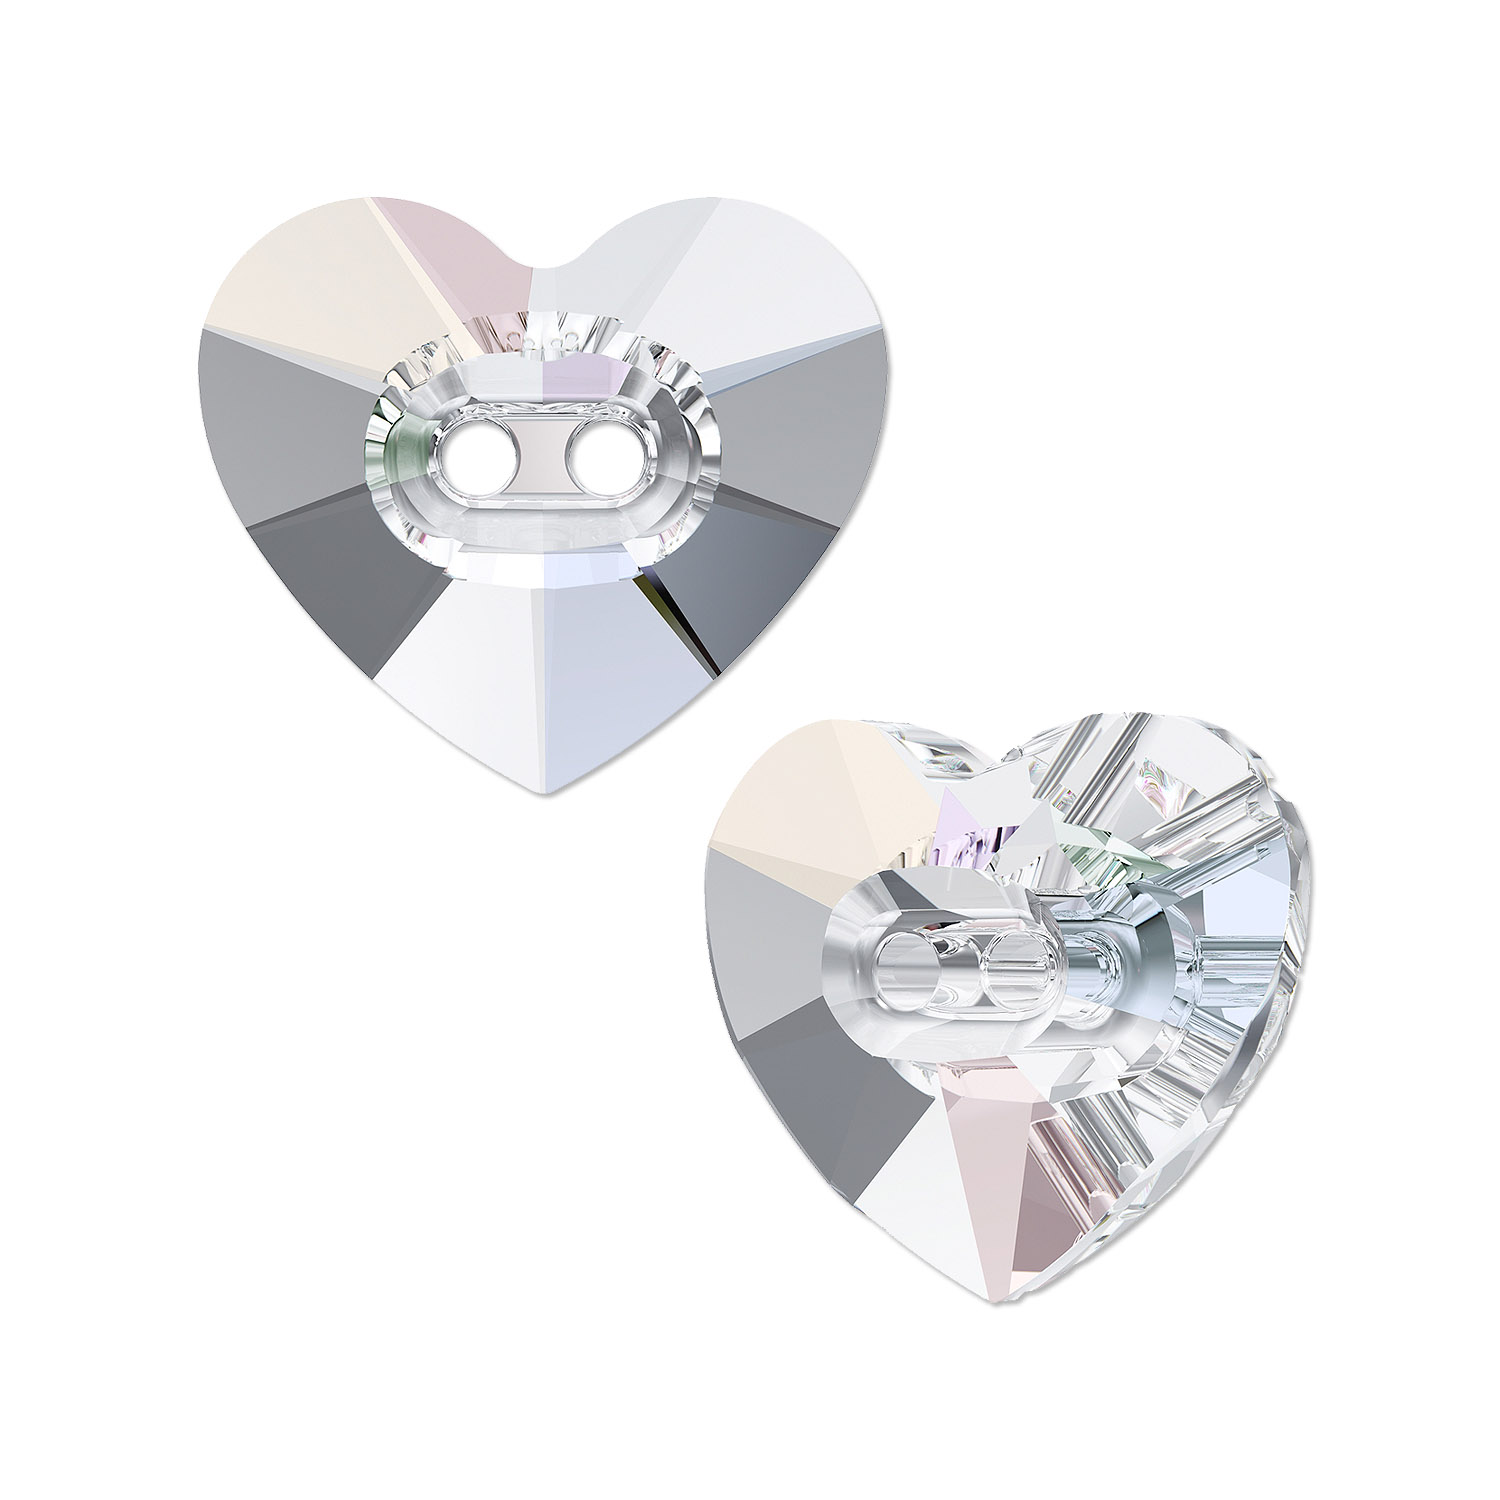 Buy now and save 50 off on swarovksi elements swarovski - Swarovski crystal buttons ...